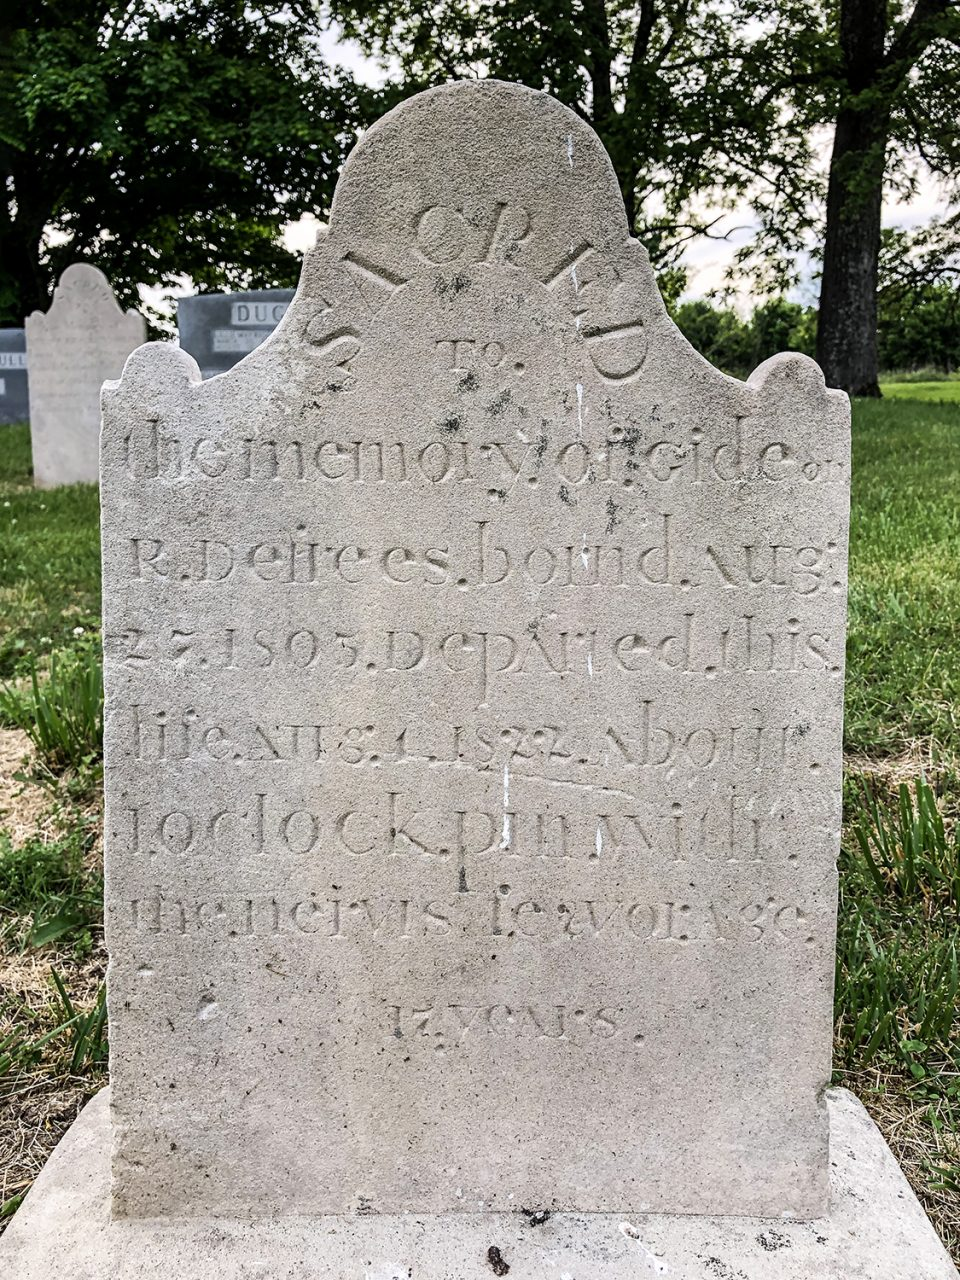 """Tombstone in the Riggs Crossroads Cemetery in Williamson County, Tennessee: """"Sacred to the memory of Gideon R. Defrees, born'd Aug. 27, 1805. Departed this life Aug. 1, 1822.  About 10 o'clock p.m. with the nervis feavor. Age 17 years."""""""